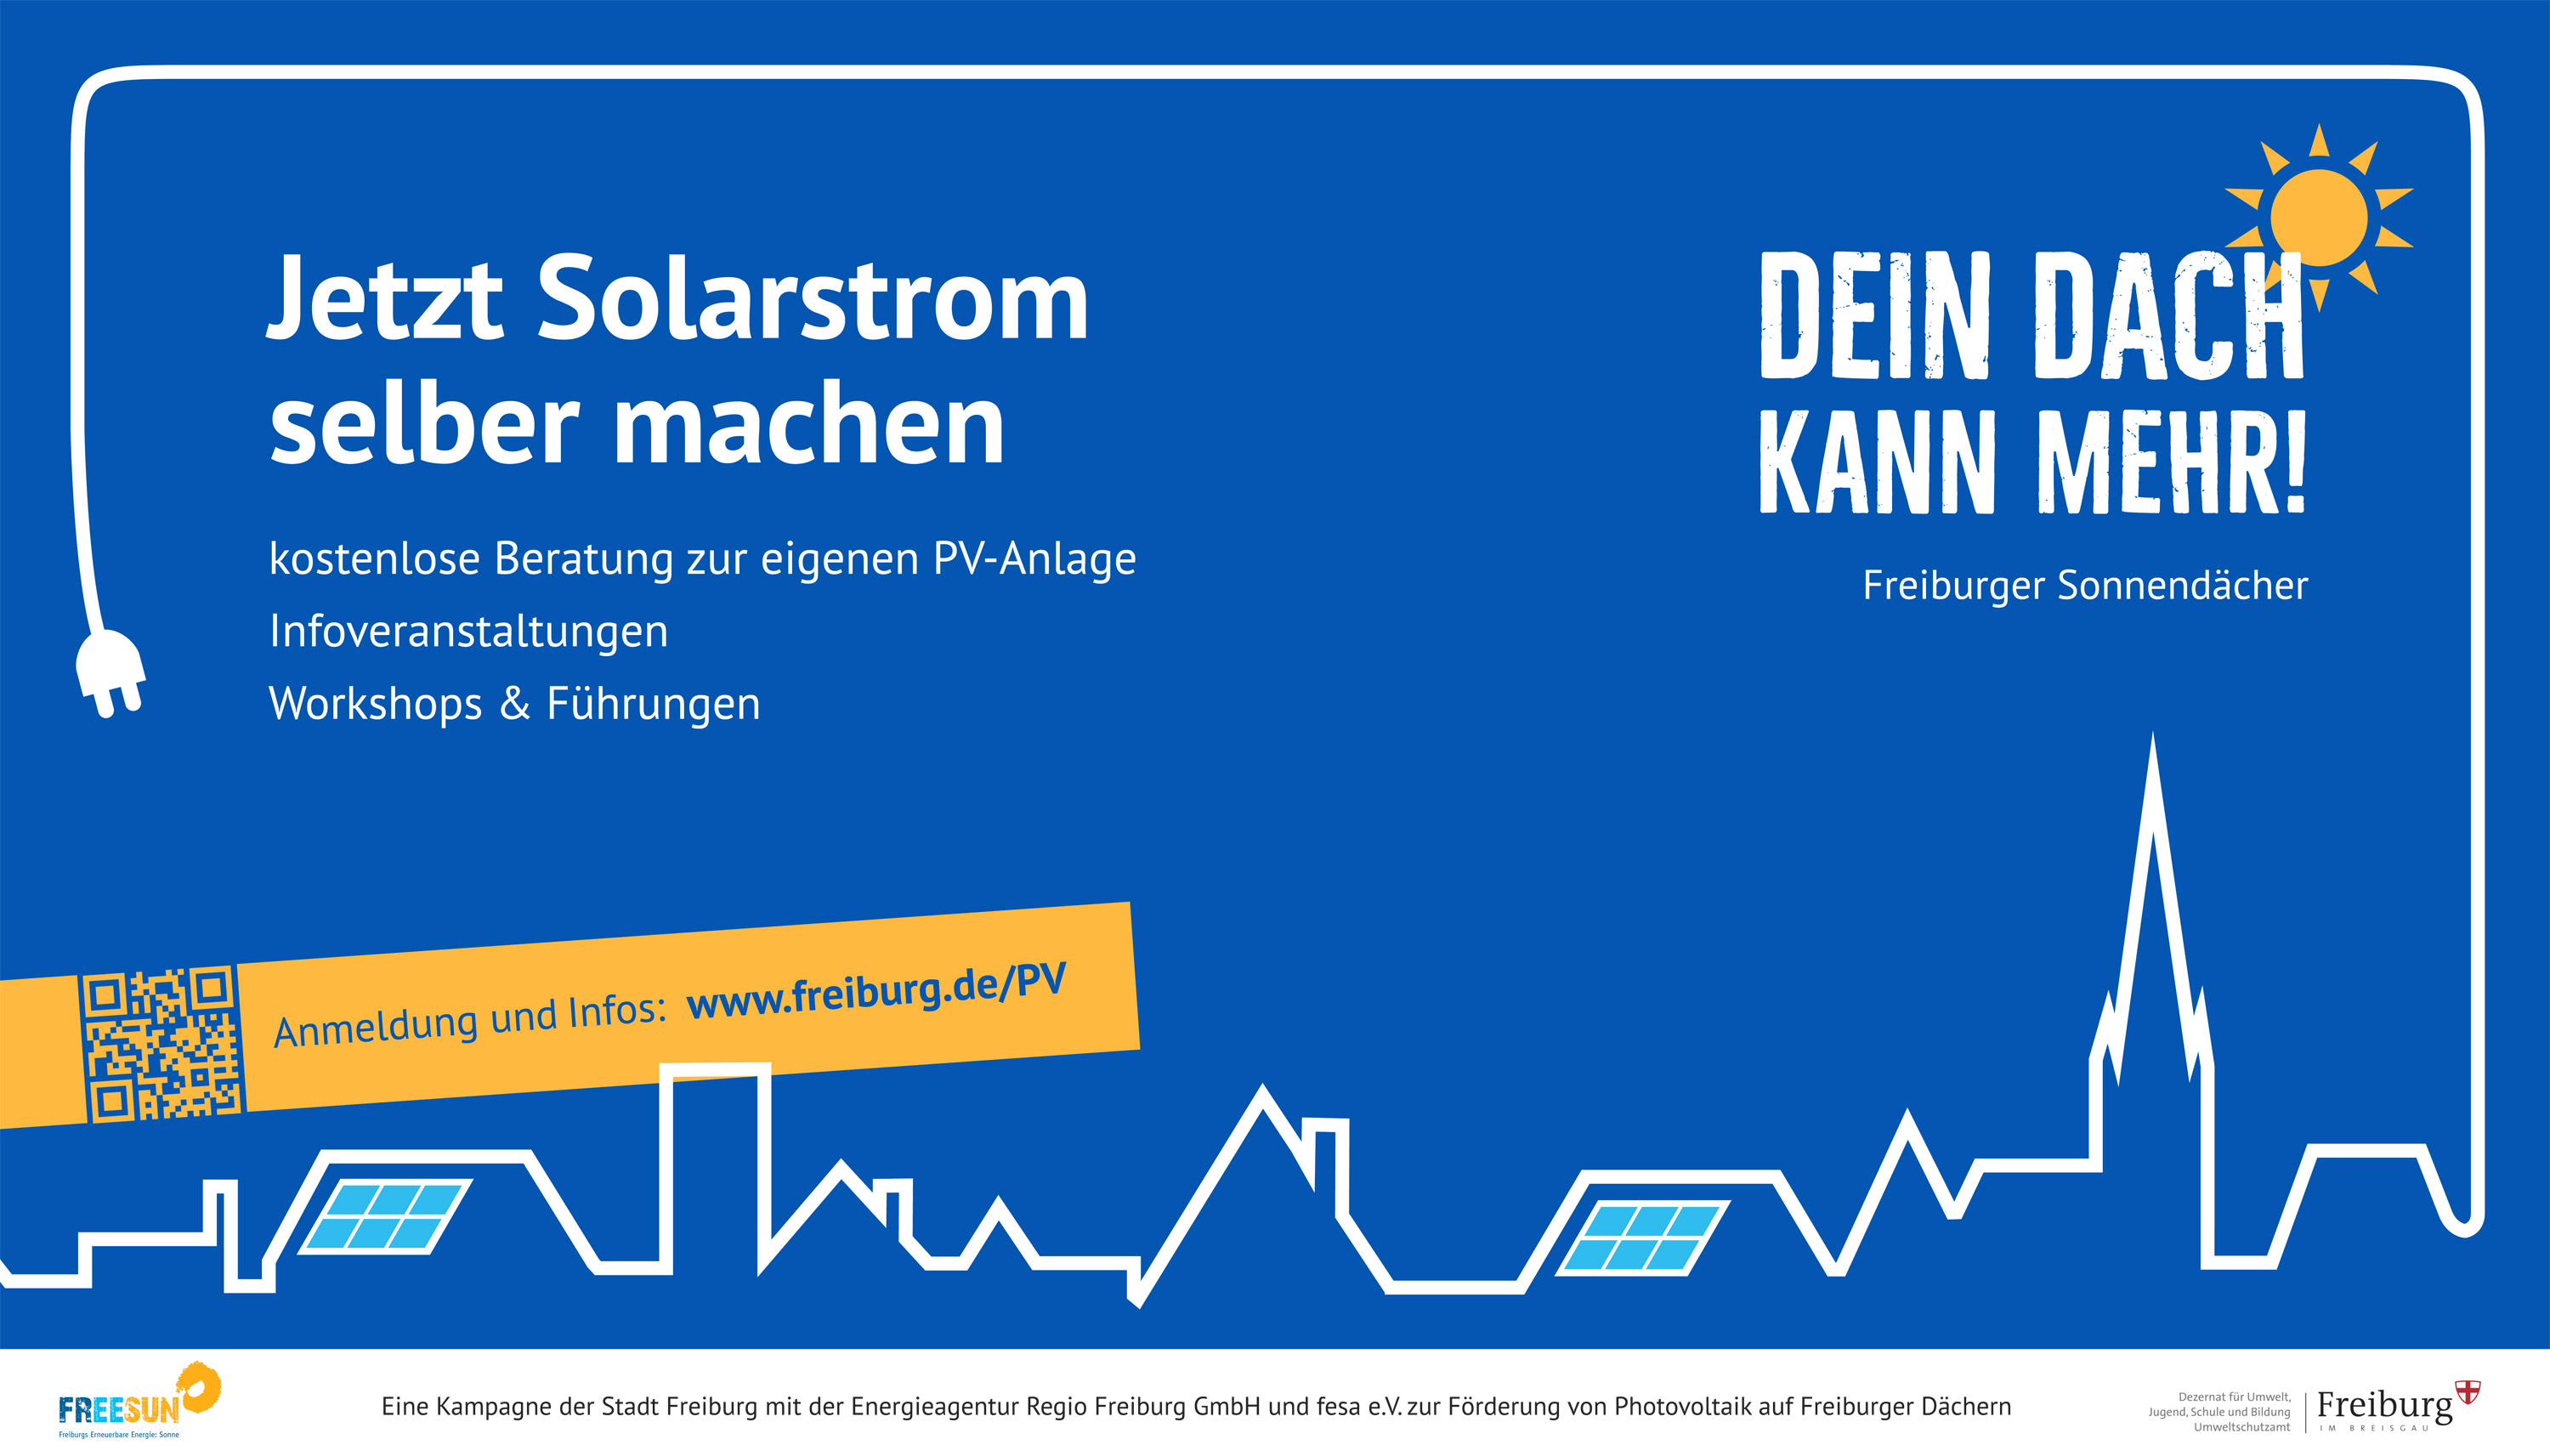 Corporate Design – Photovoltaik-Kampagne der Stadt Freiburg